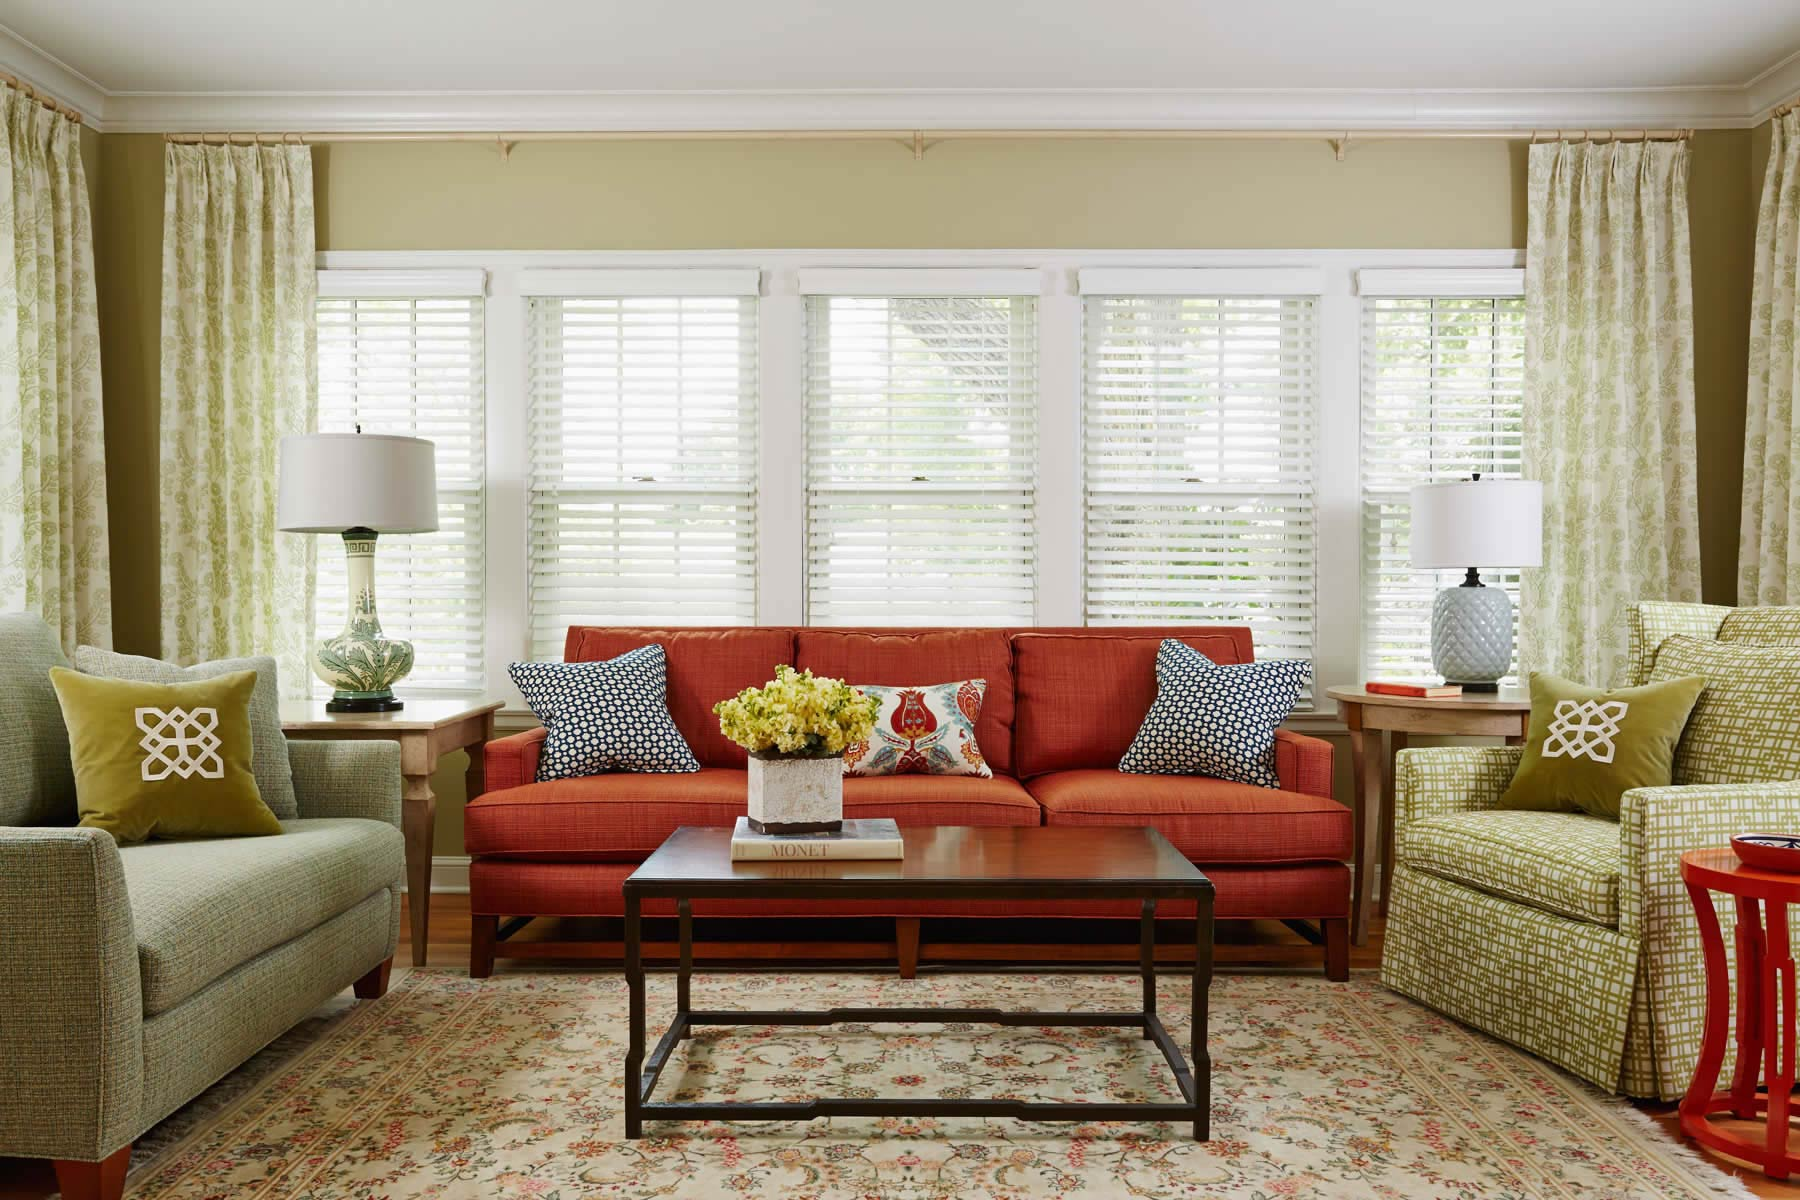 Updated sunroom with orange and green color palette in classic home